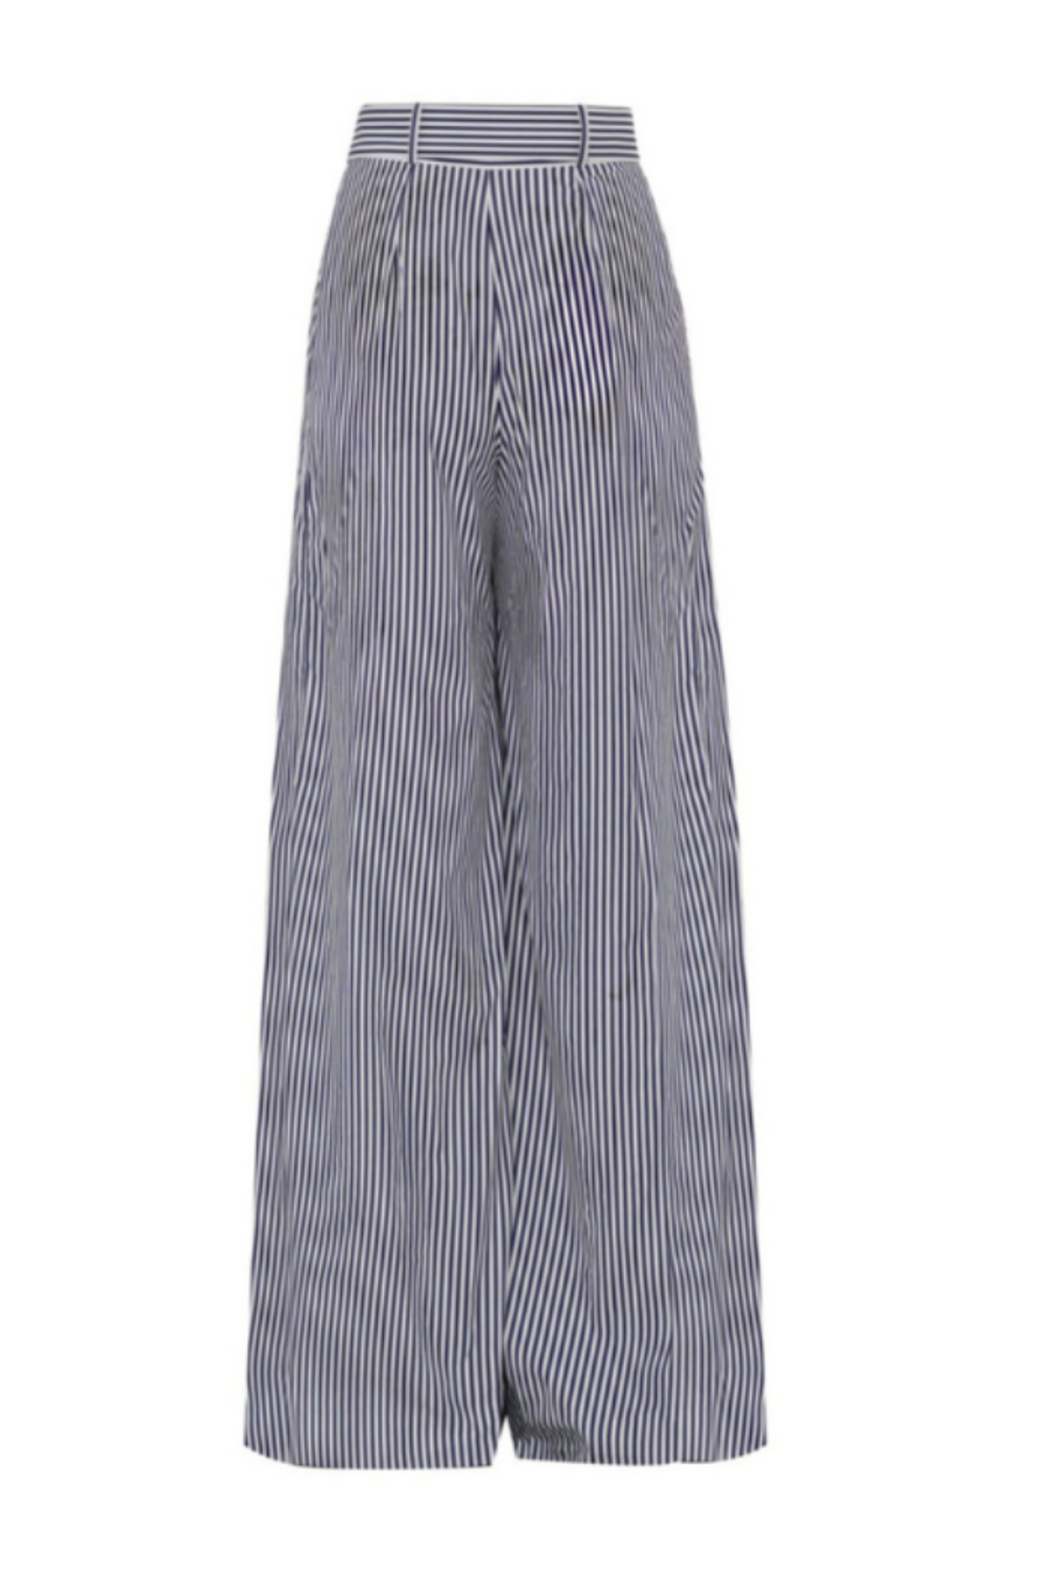 Martin Grant GATHERED WAIST STRIPED WIDE LEG PANT - Front Full Image